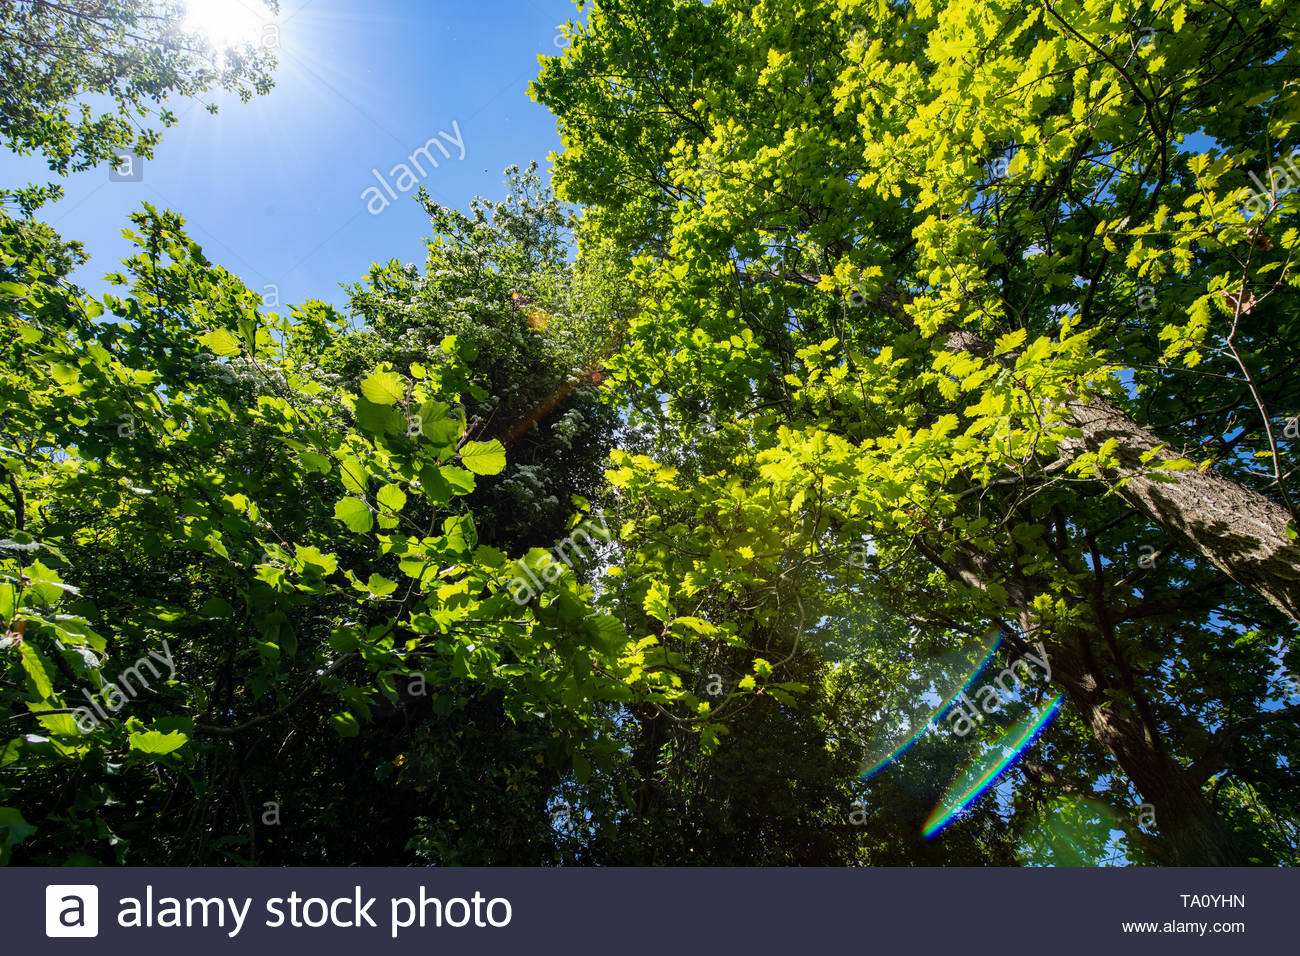 Looking up into a tree canopy against a clear blue sky with slight lens flare emphasising the sunlight. - Stock Image